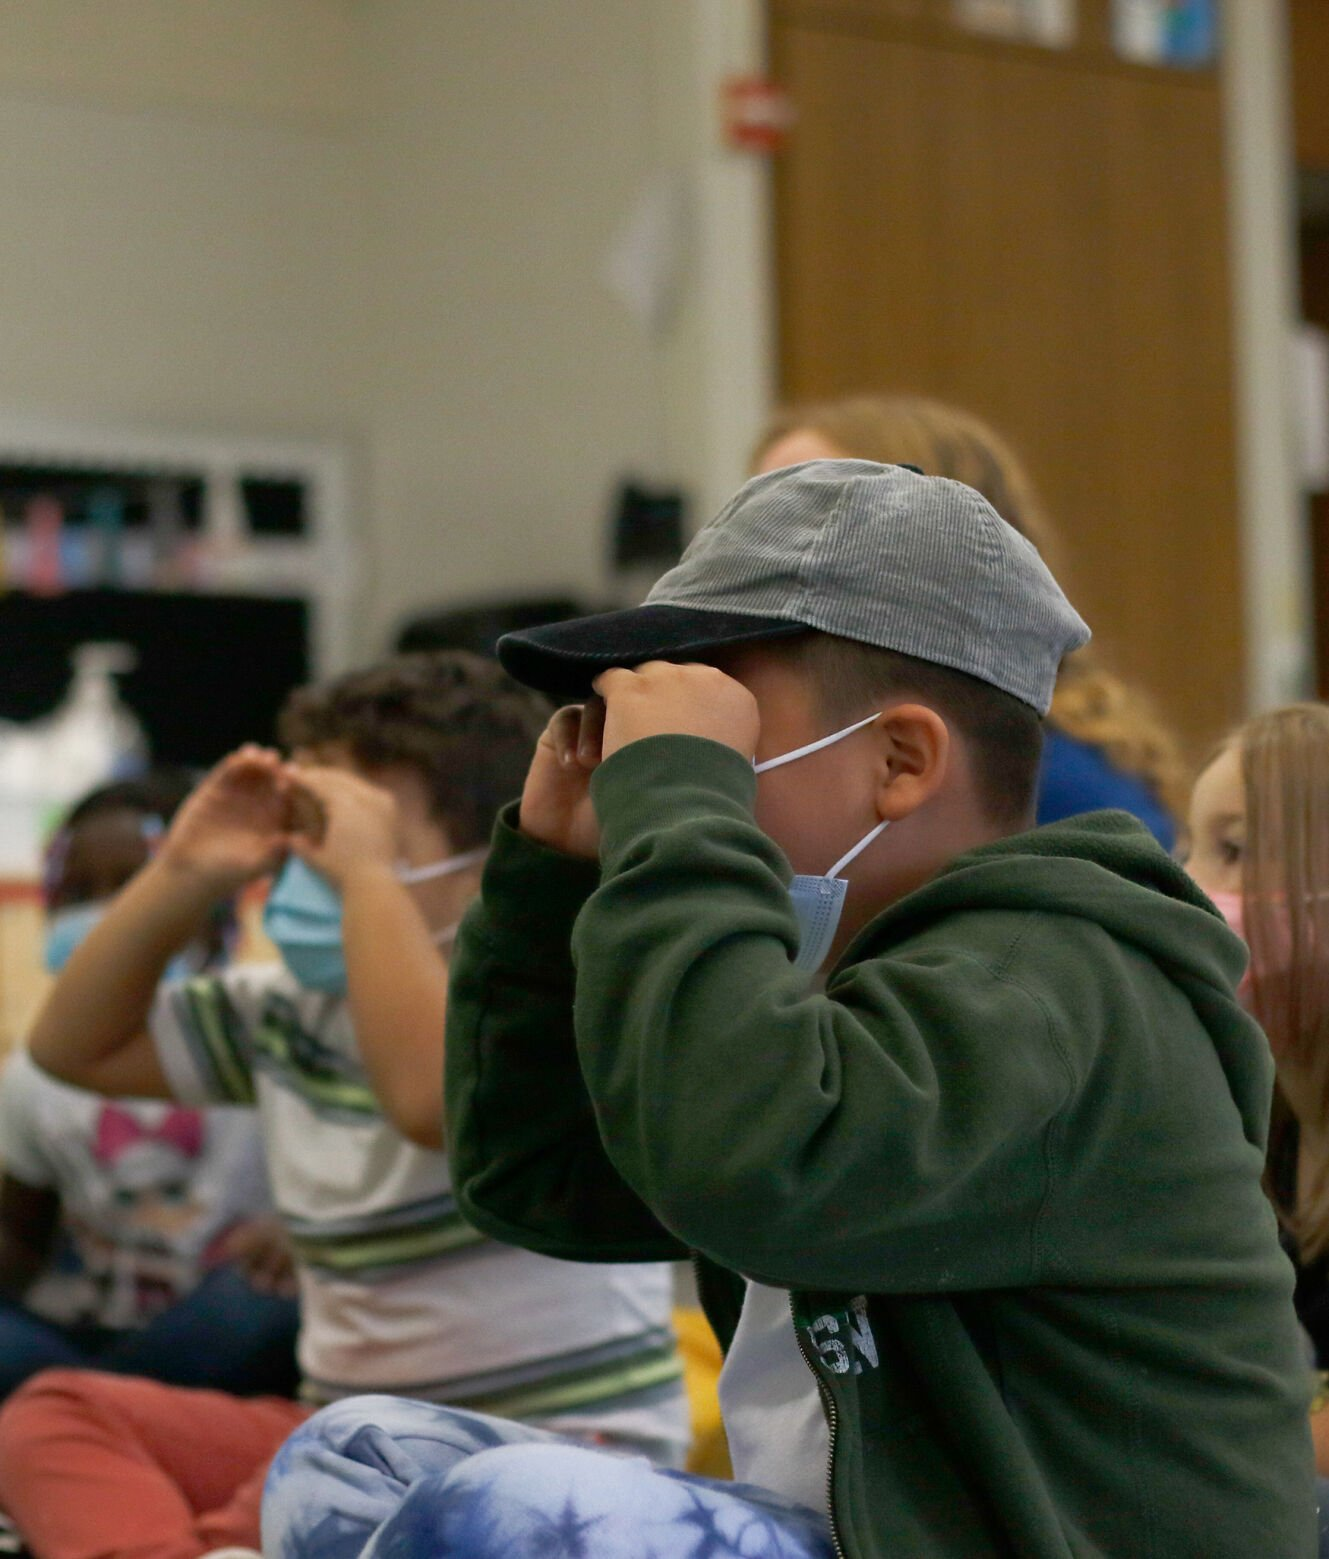 Students use their hands to emphasize focus during